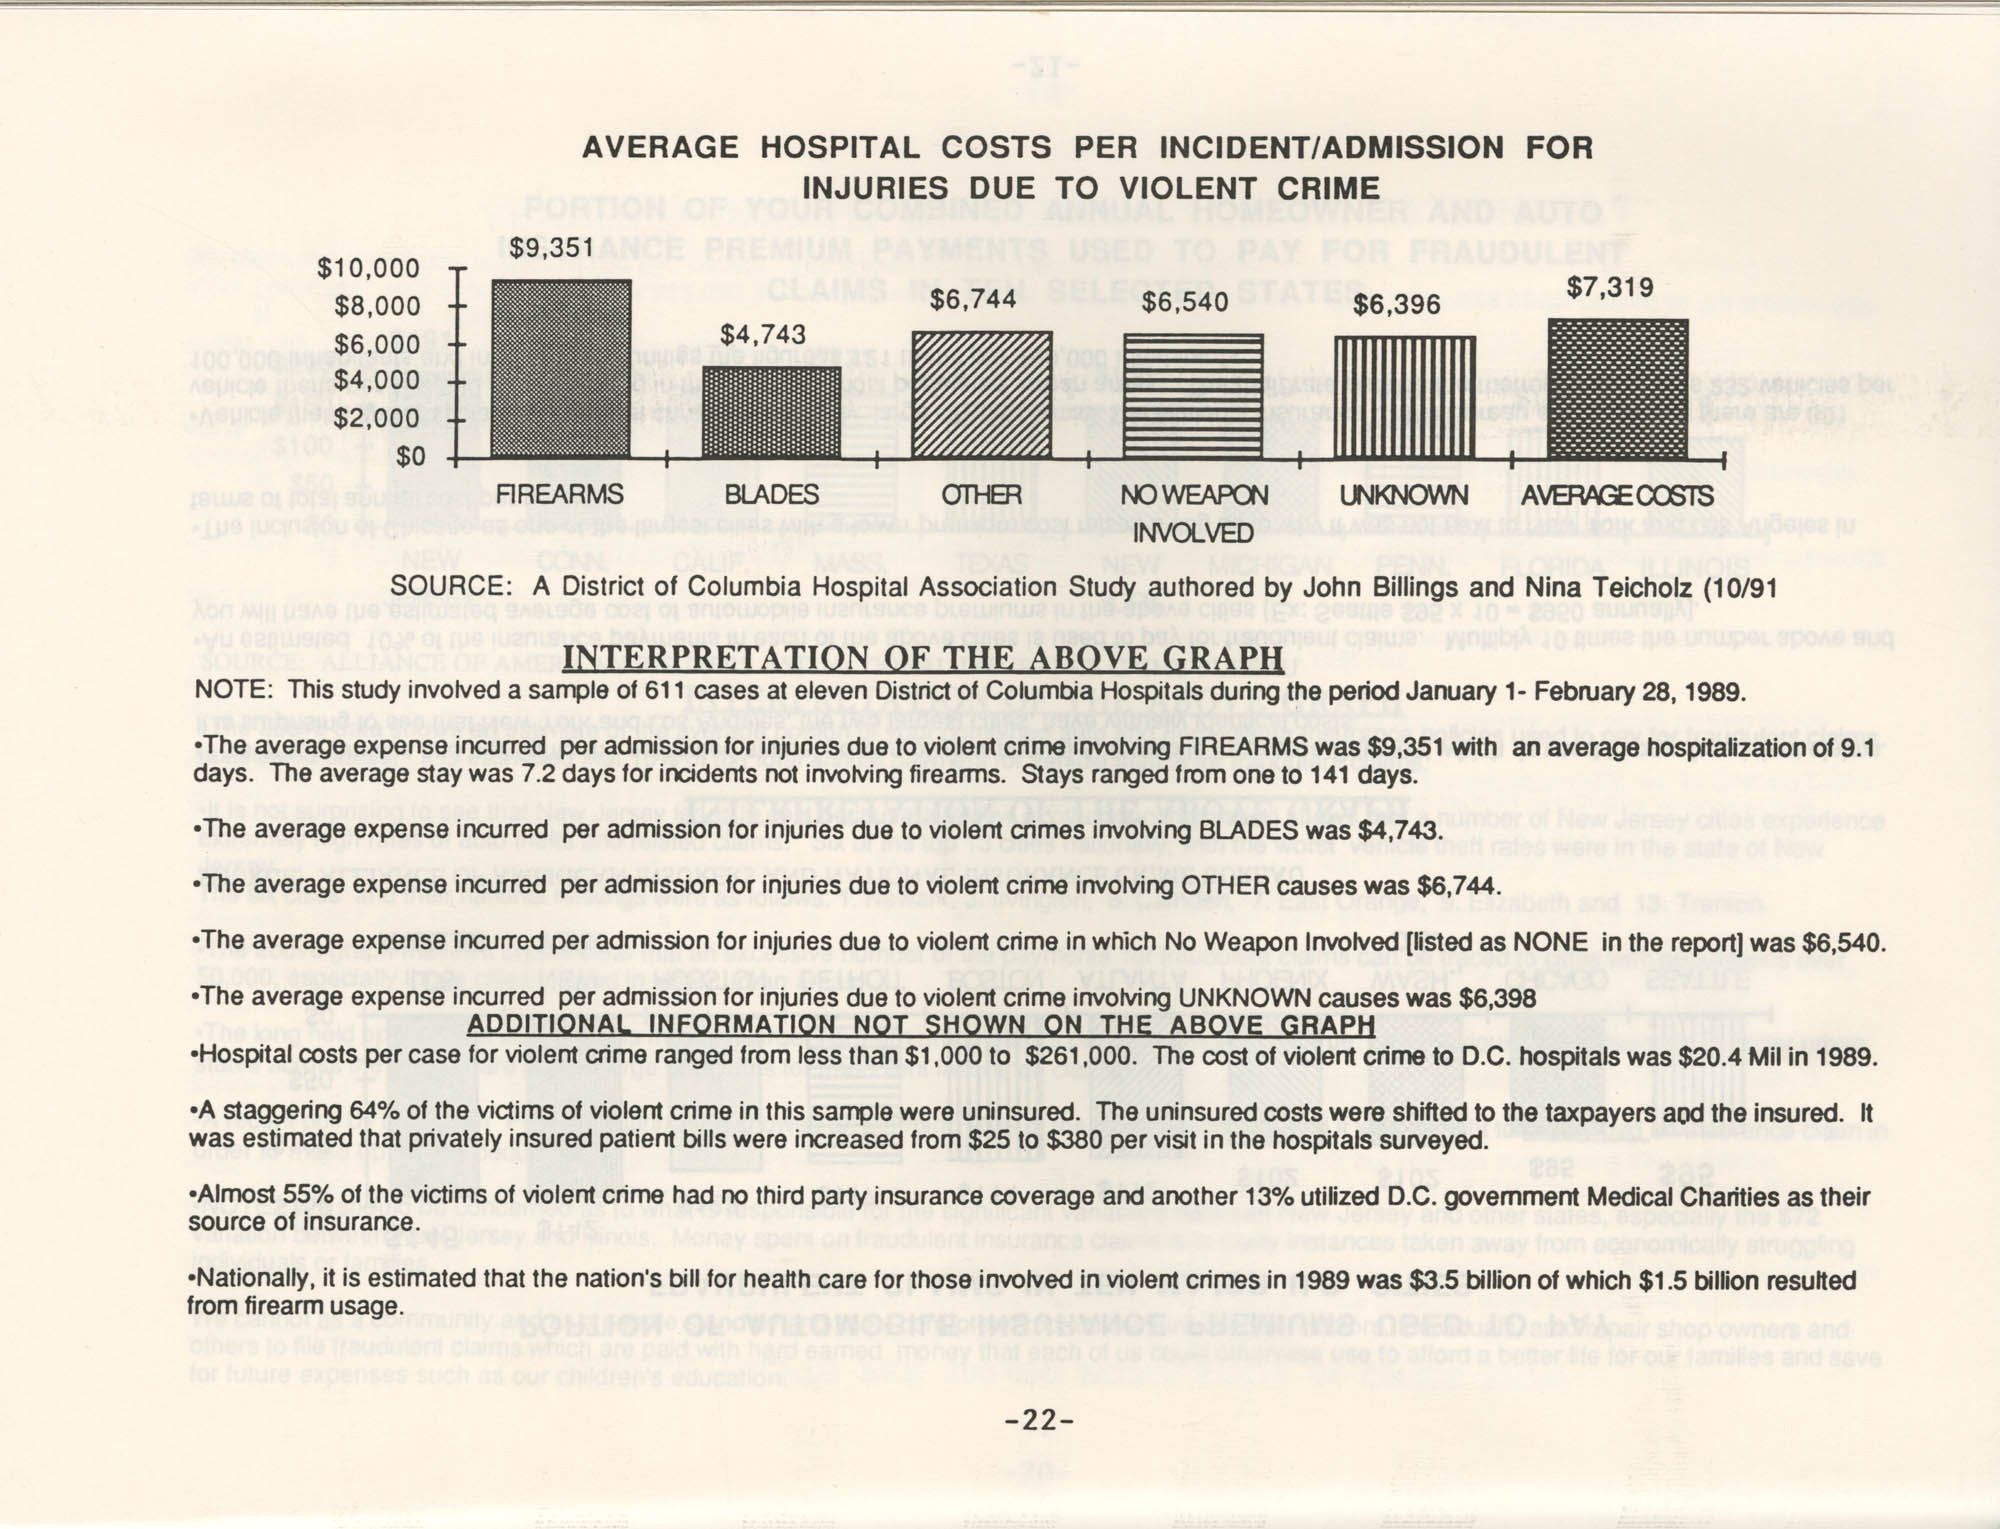 Crime and Criminal Activities in the U.S.A., NAACP National Board of Directors, Page 22